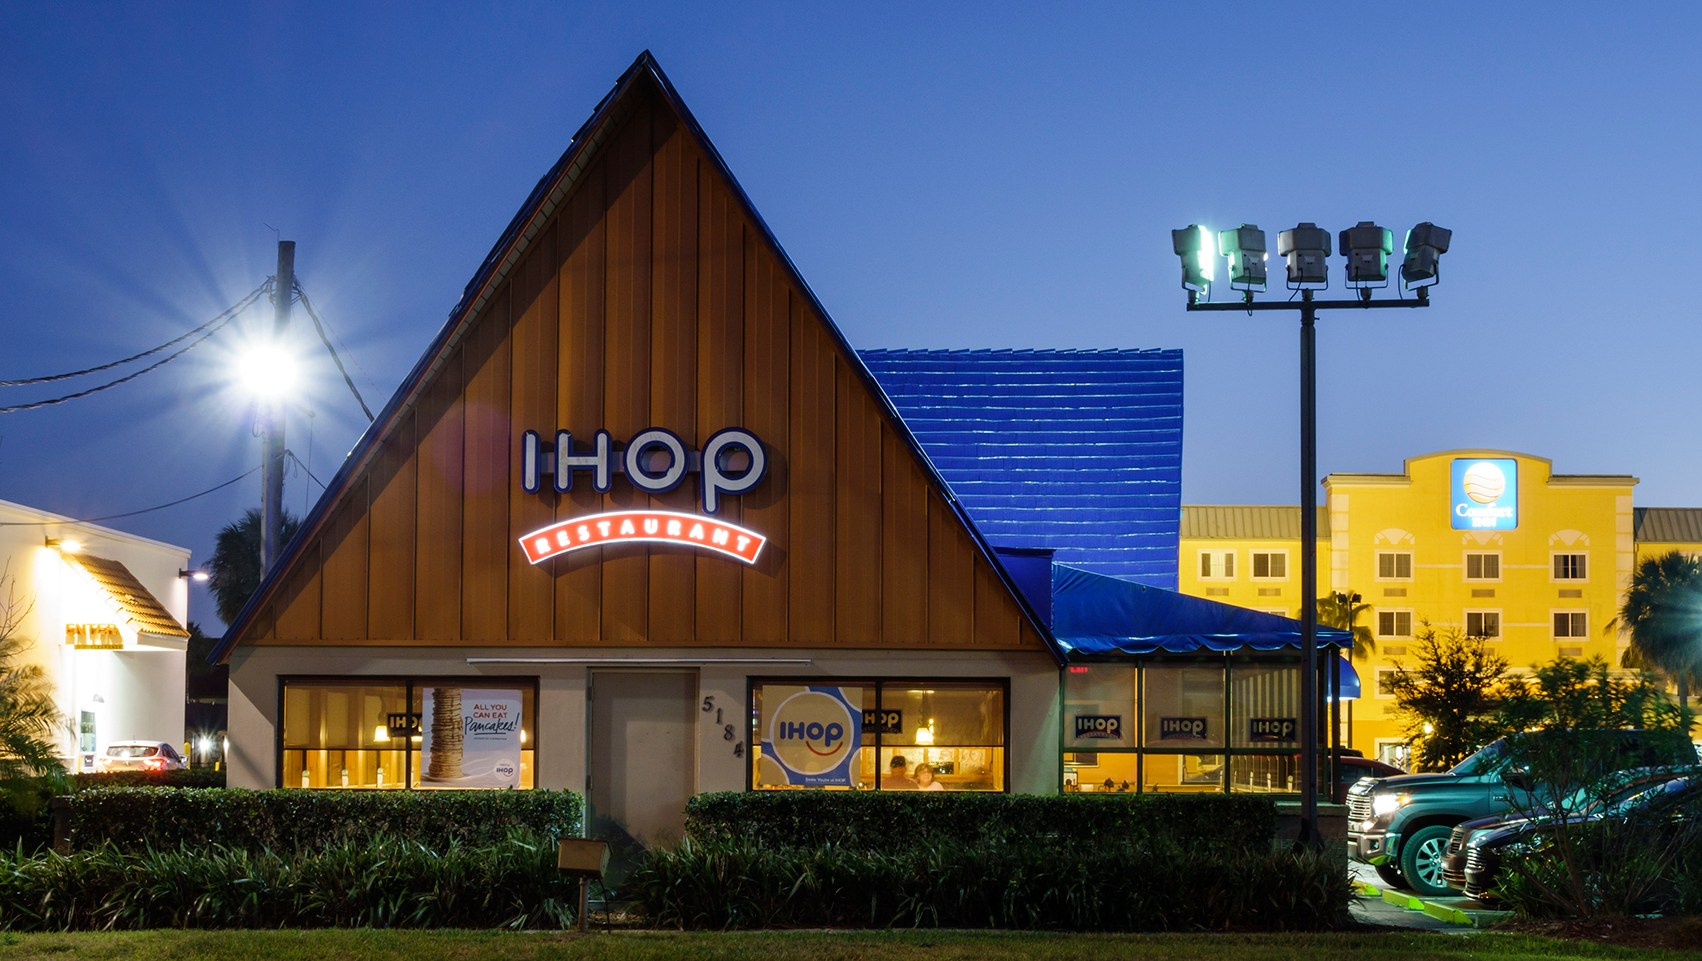 The exterior of IHOP